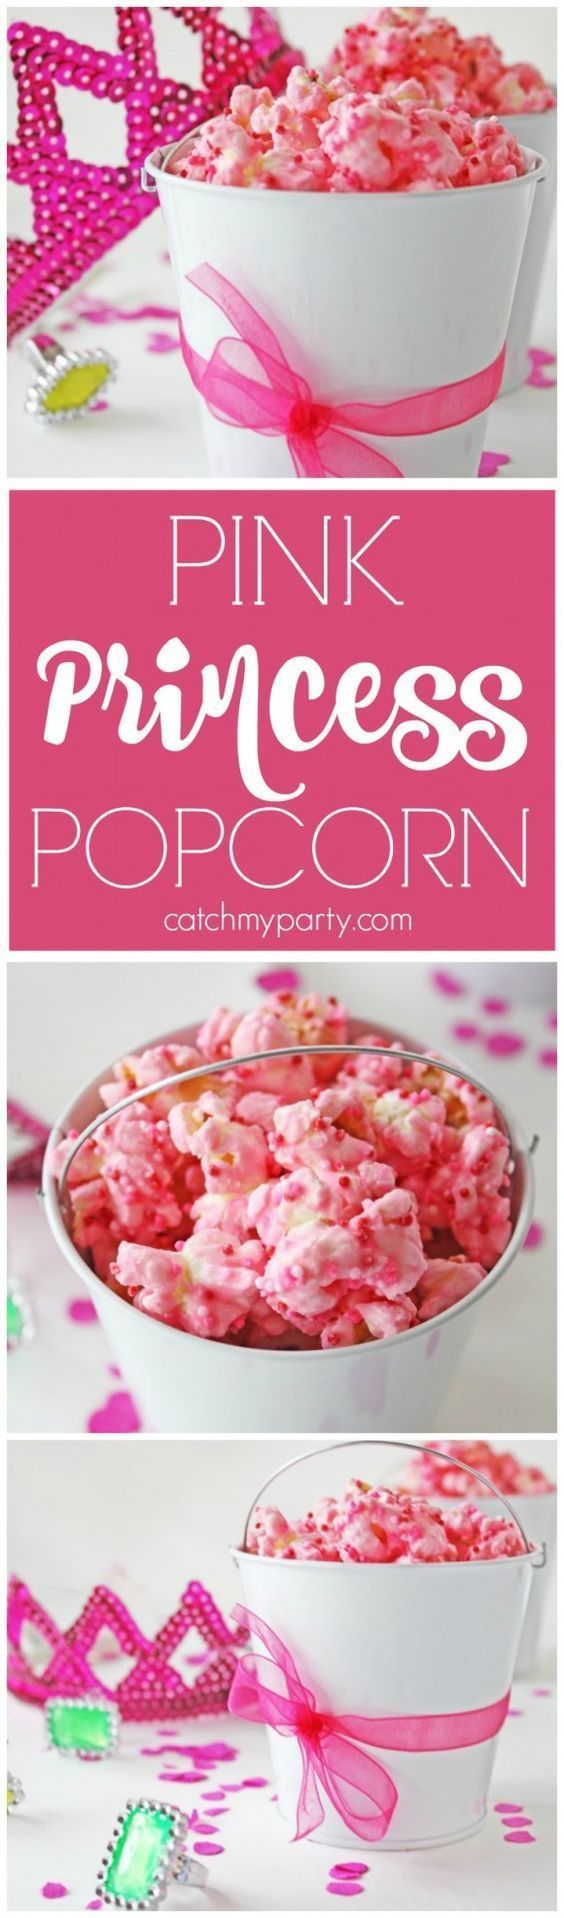 Easy budget-friendly pink princess popcorn treat. This is a great birthday party dessert, looks great on a dessert table, and you can customize the color to match your party! | http://CatchMyParty.com